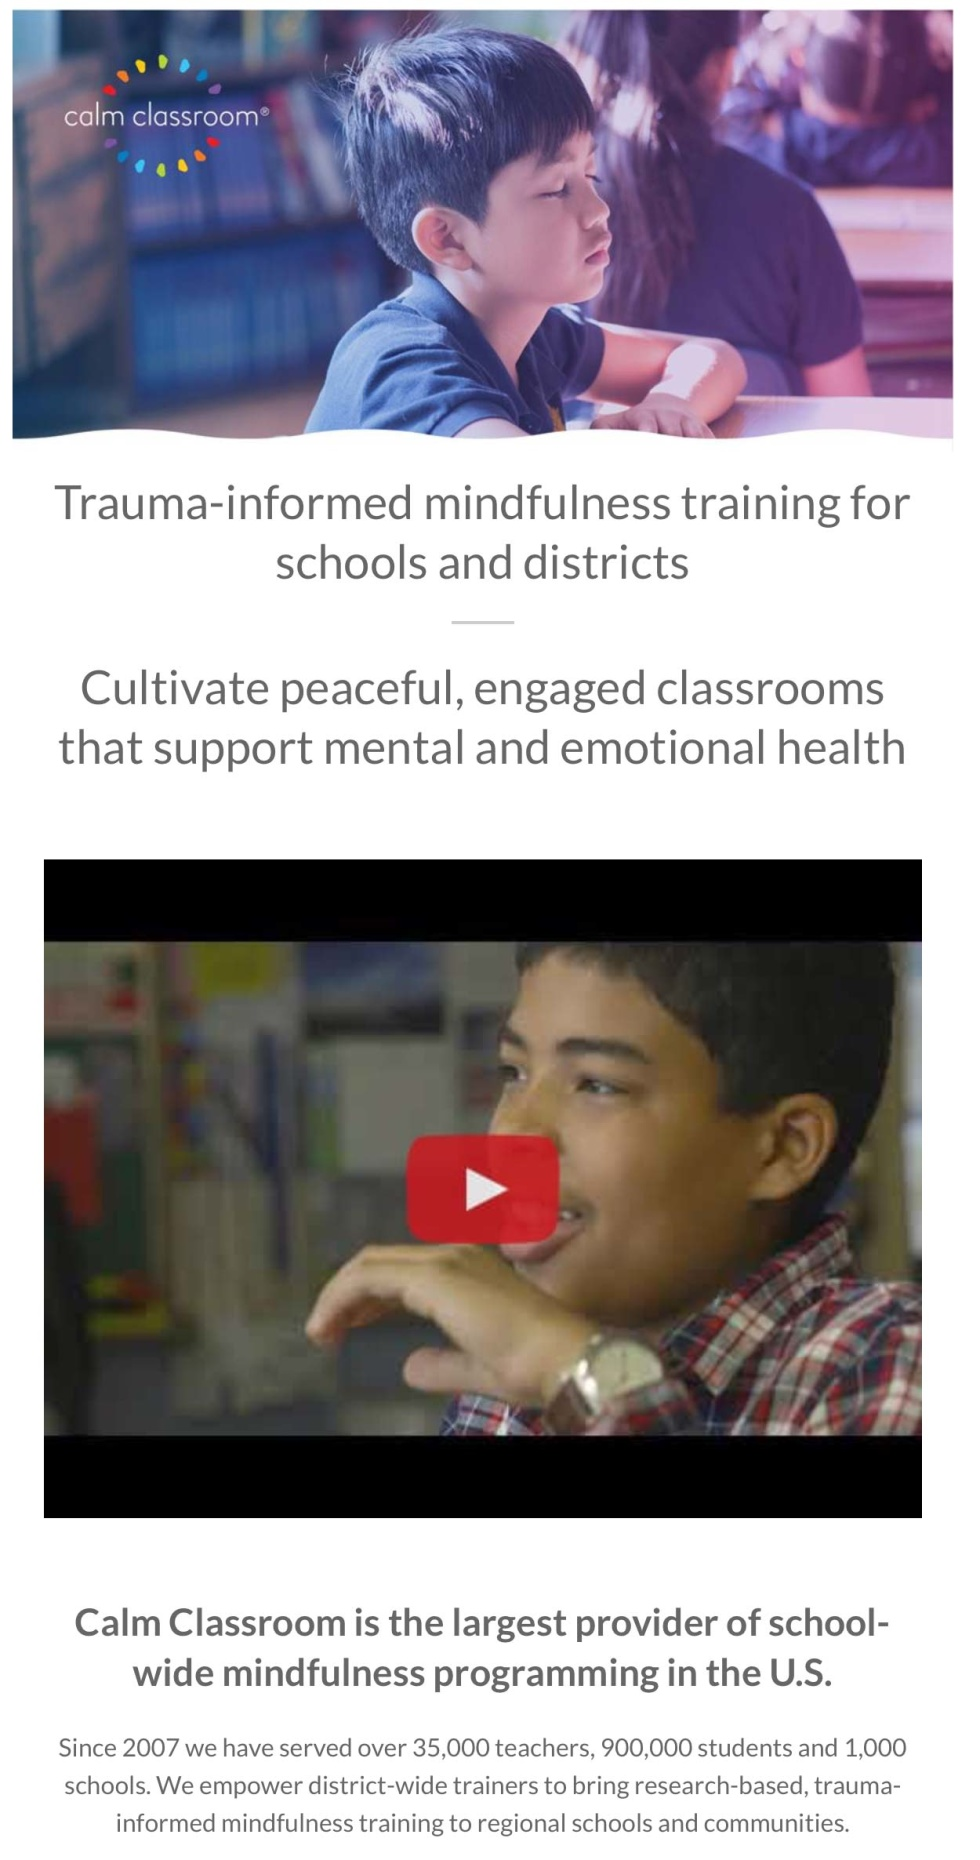 Screenshot of newsletter layout for meditation group. Features images of schoolchildren meditating and a youtube video. Several quotes in larger text in between media.